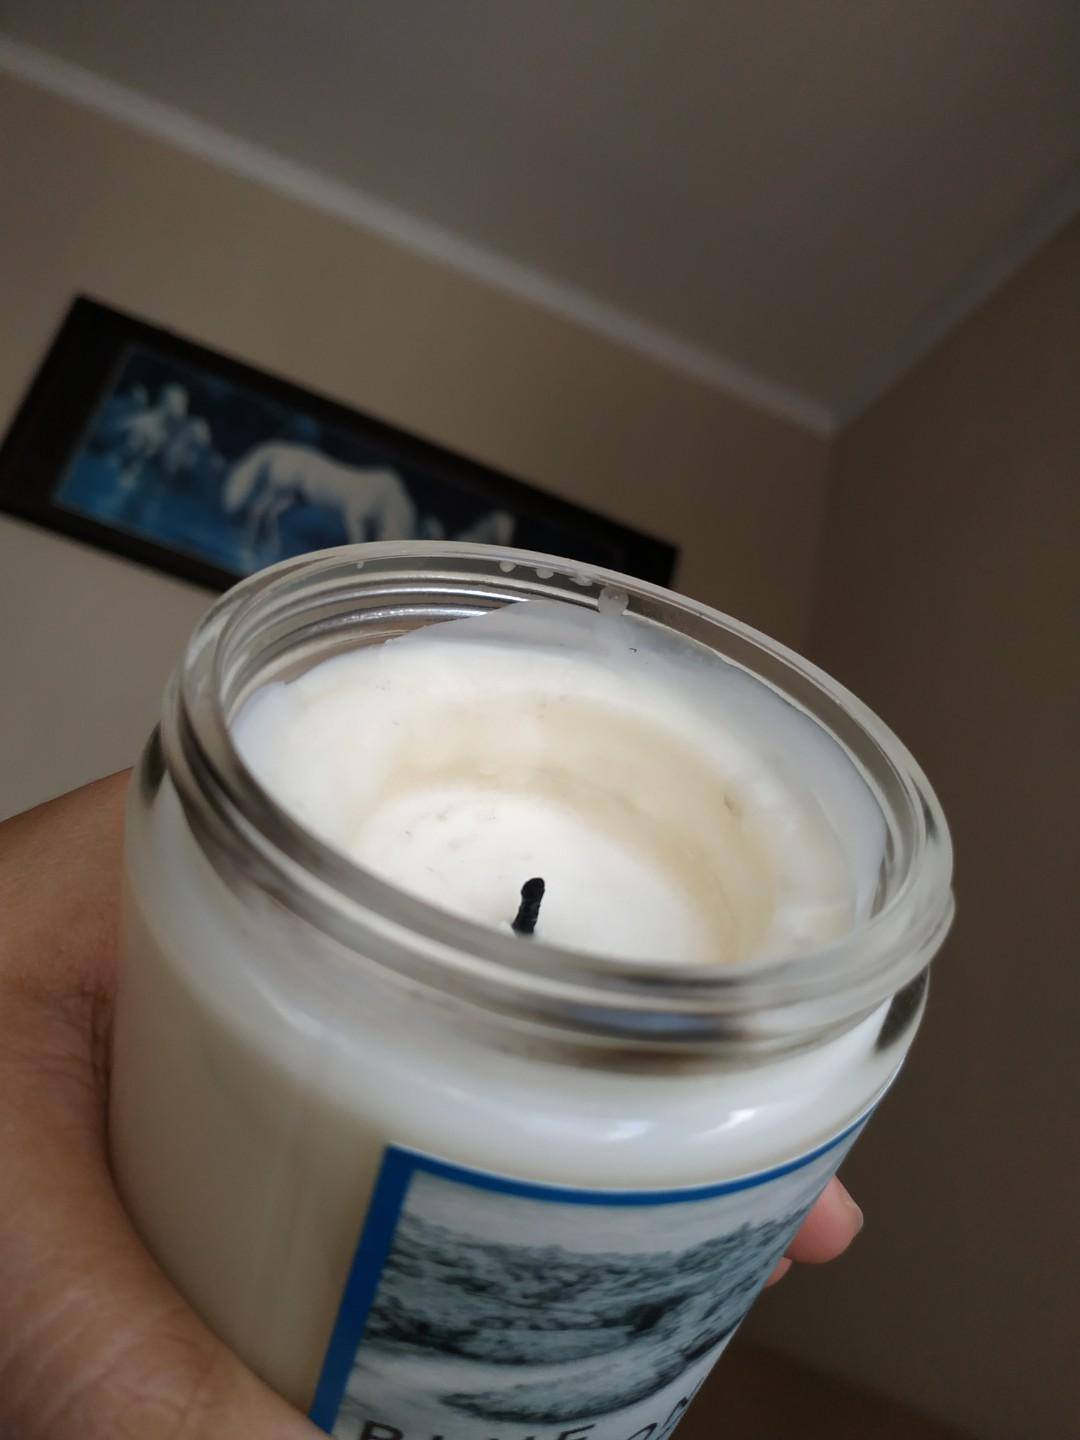 Bath & Body Works Scented Candles - Blue Lagoon Lilin Aroma